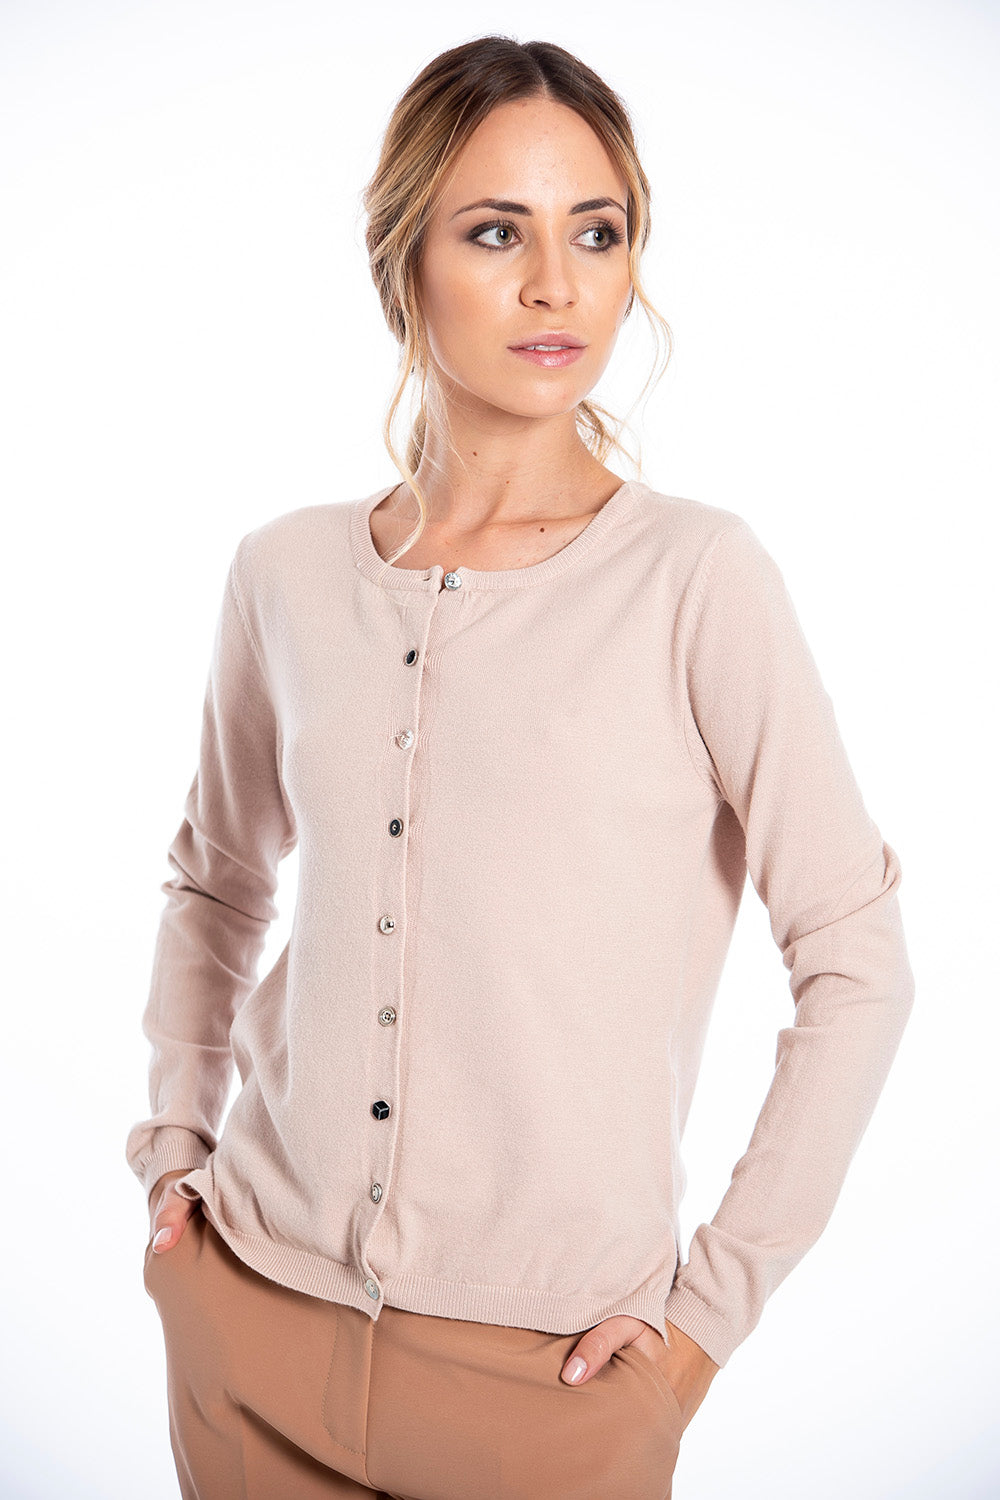 Patrizia Segreti cardigan with differerent buttons